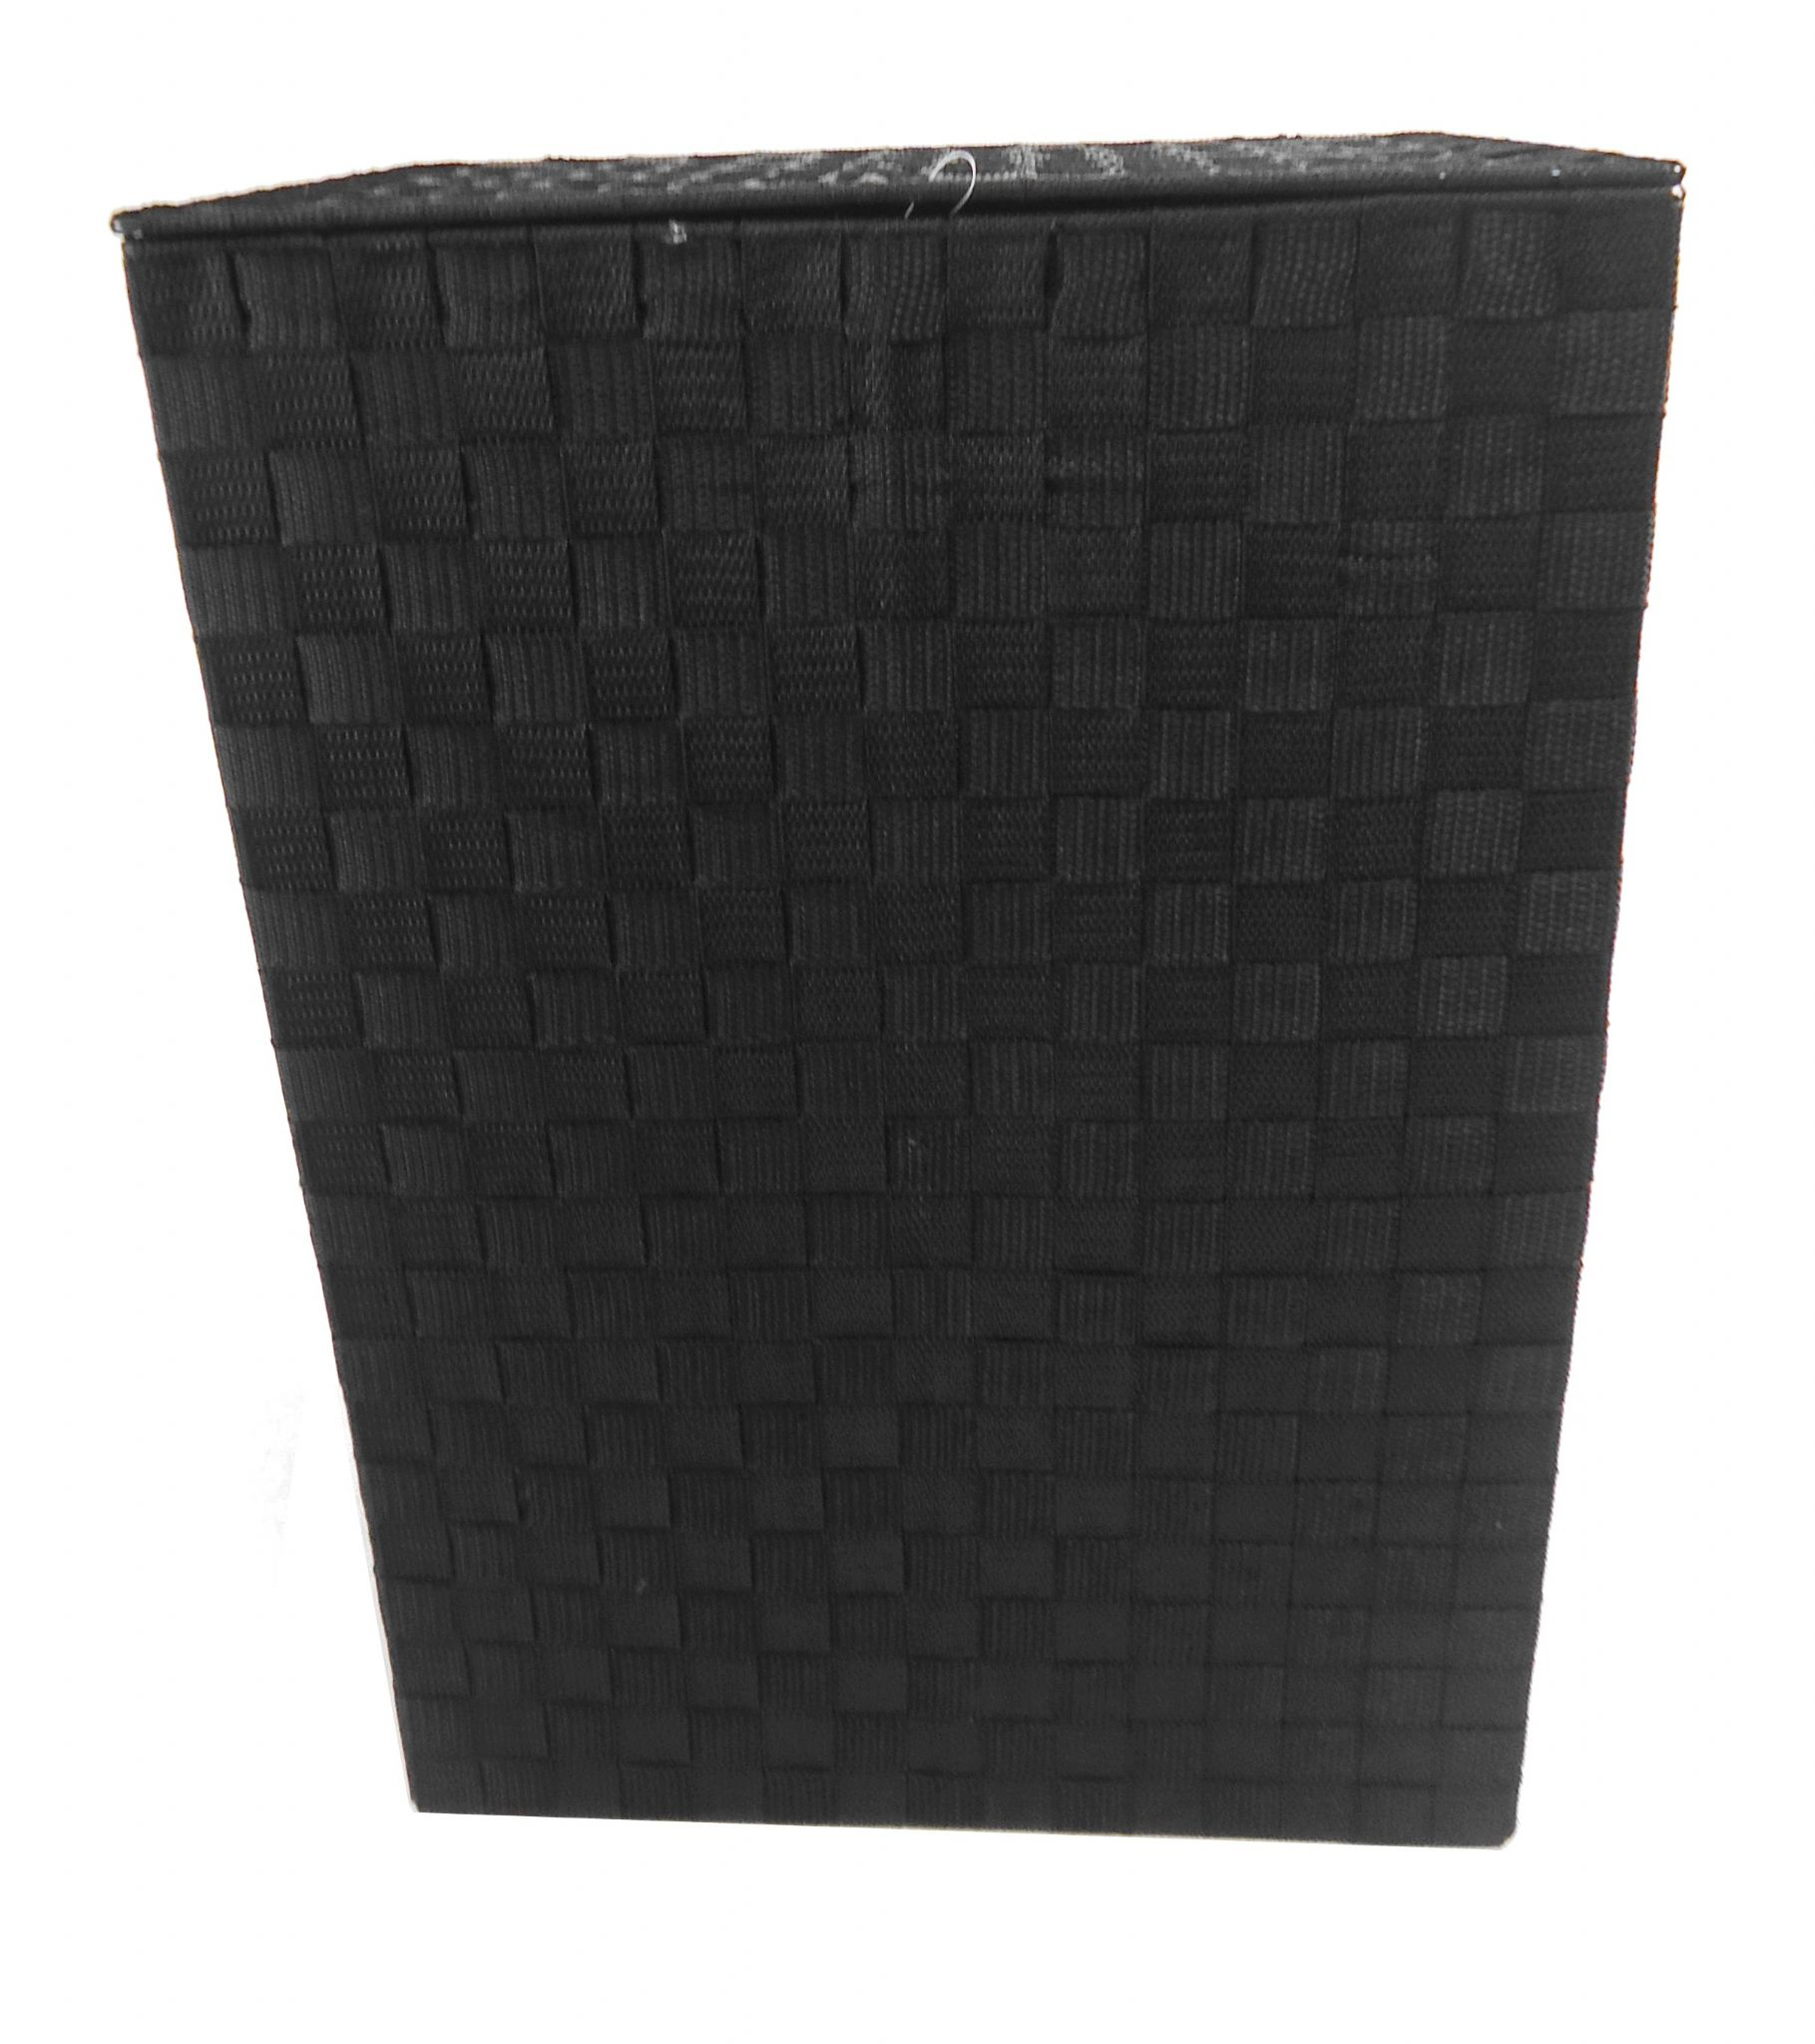 Black Laundry Hamper With Lid Brown Or Black Tapered Rectangle Laundry Basket Metal